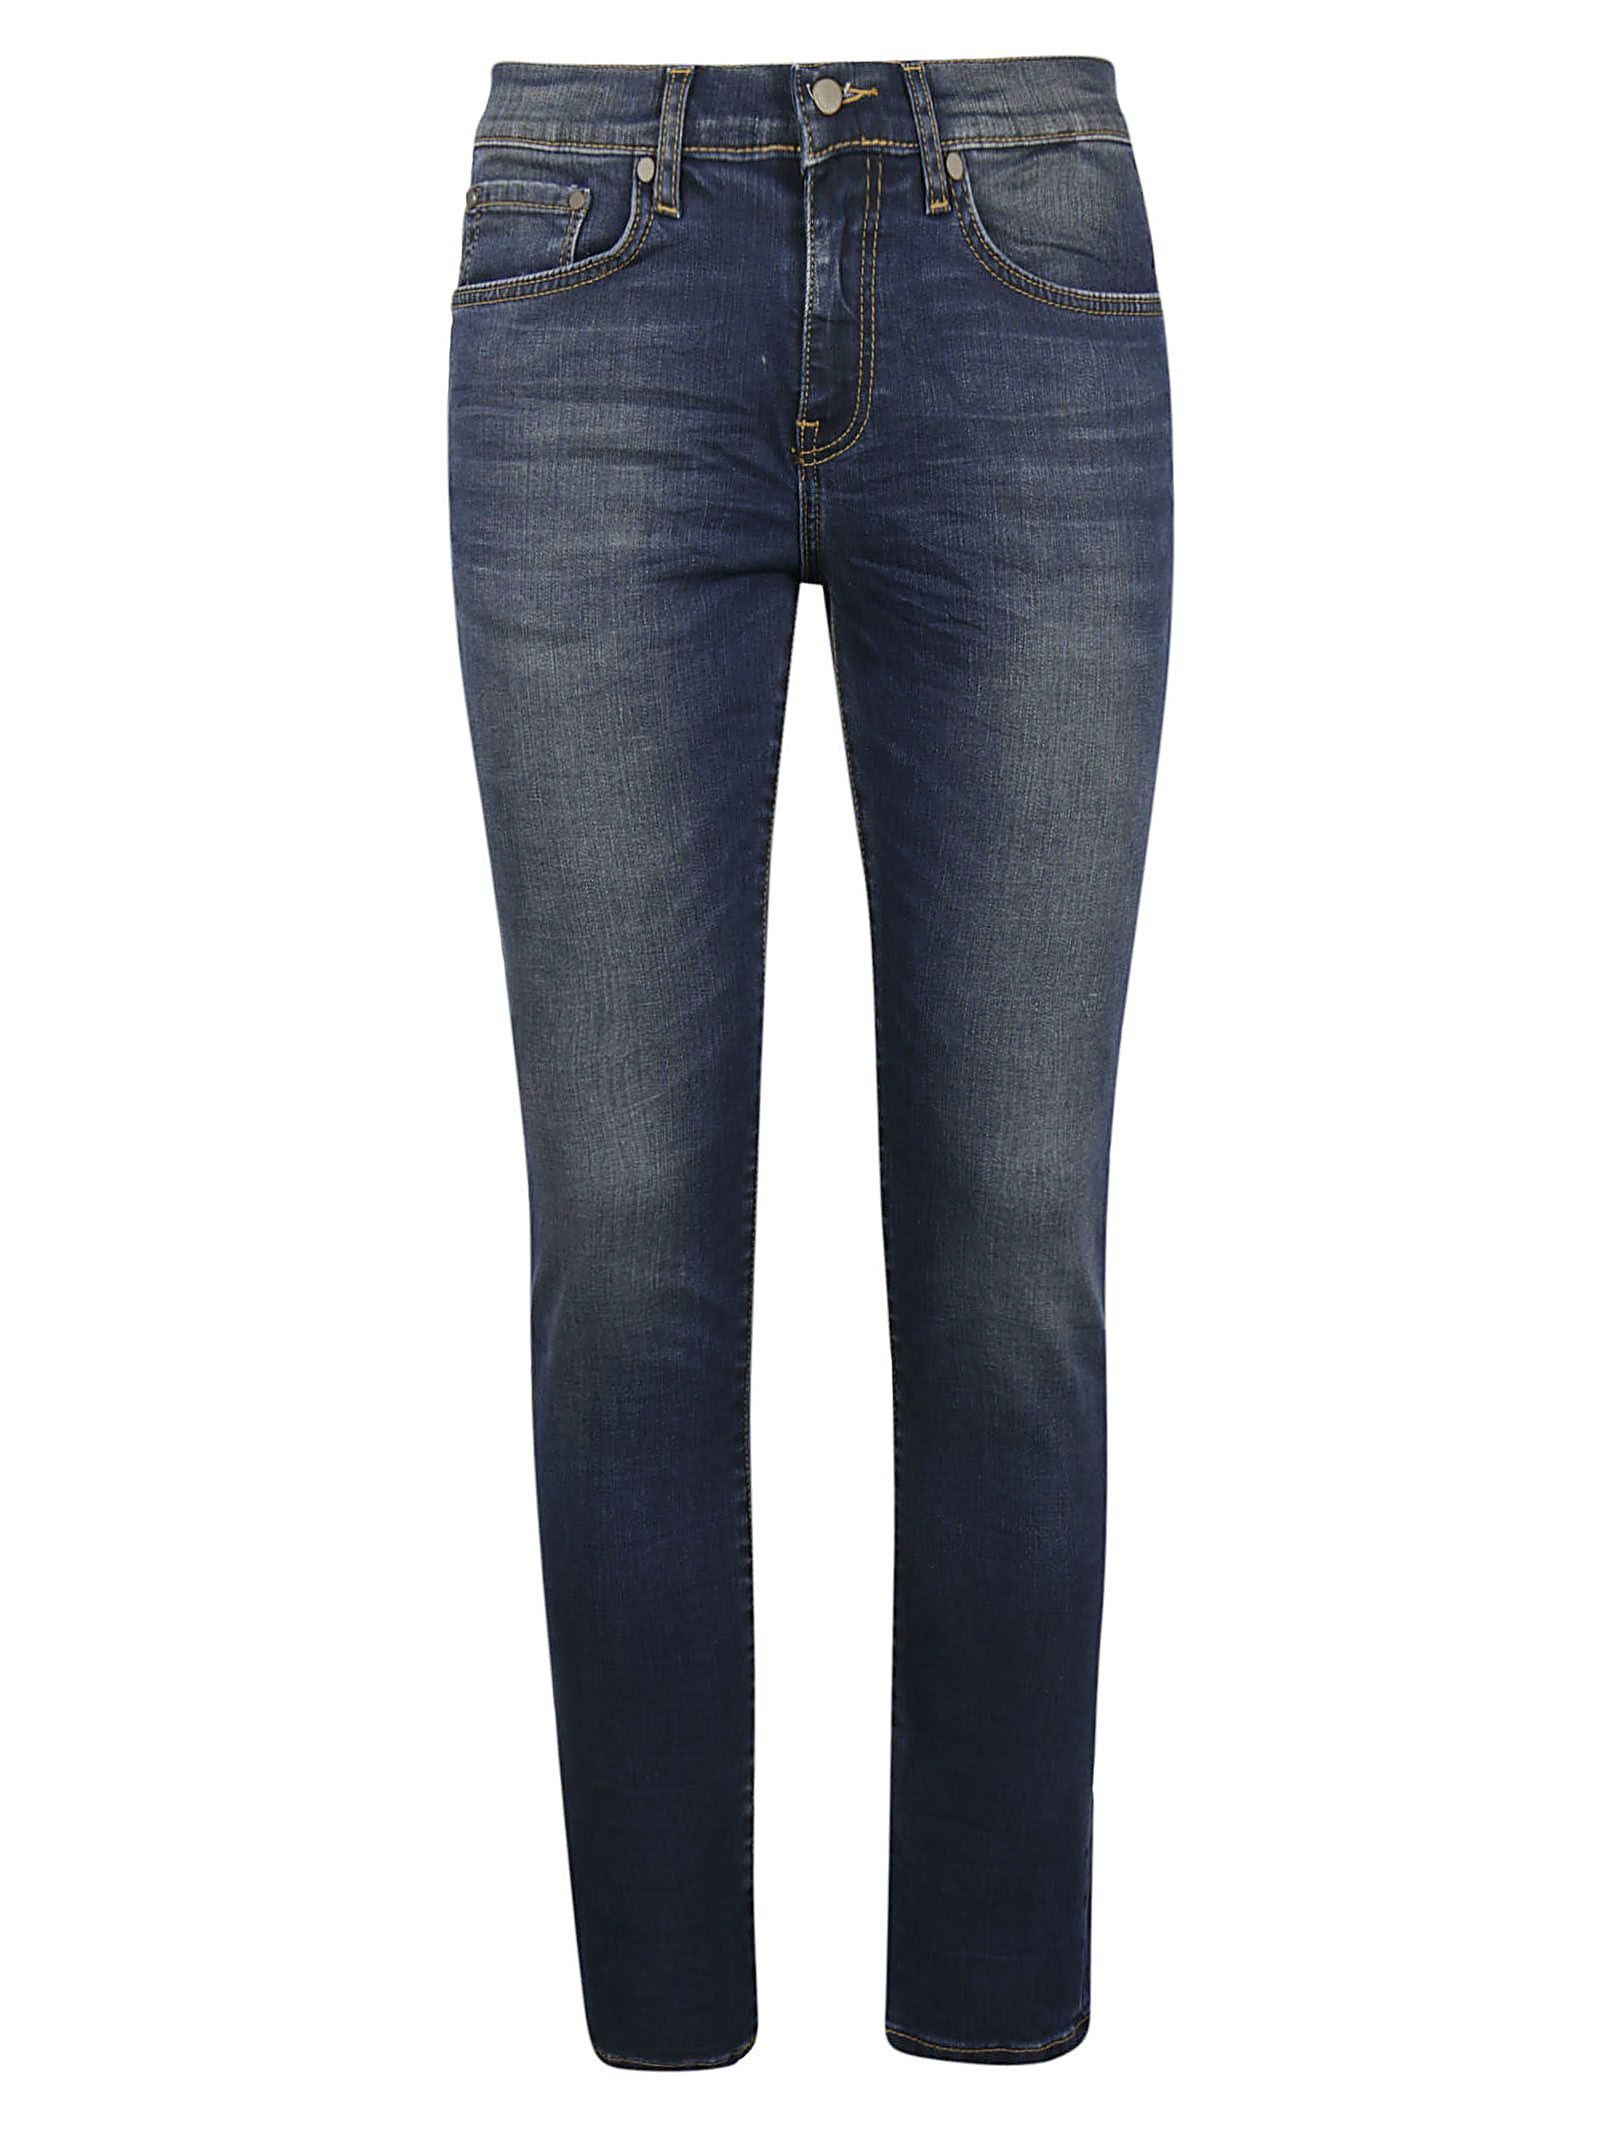 BRIAN DALES Skinny Fit Jeans in 013